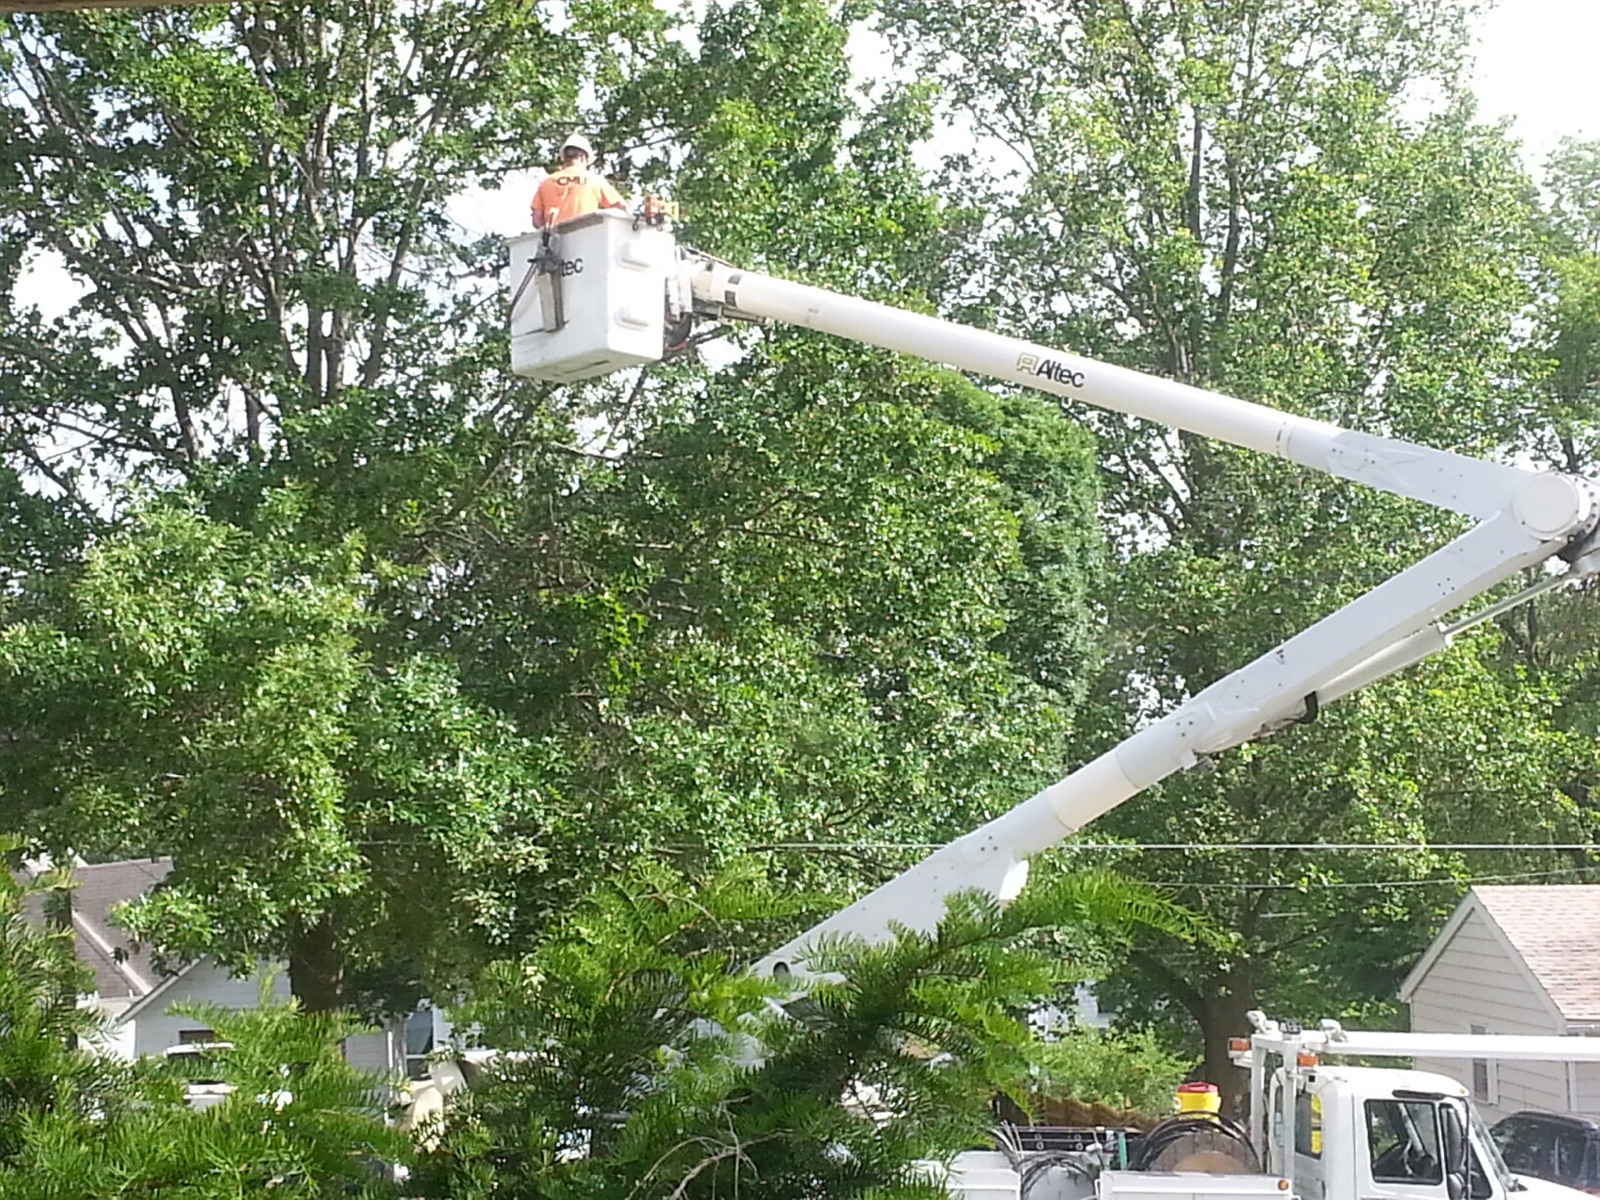 Power out in some locations due to Wednesday winds